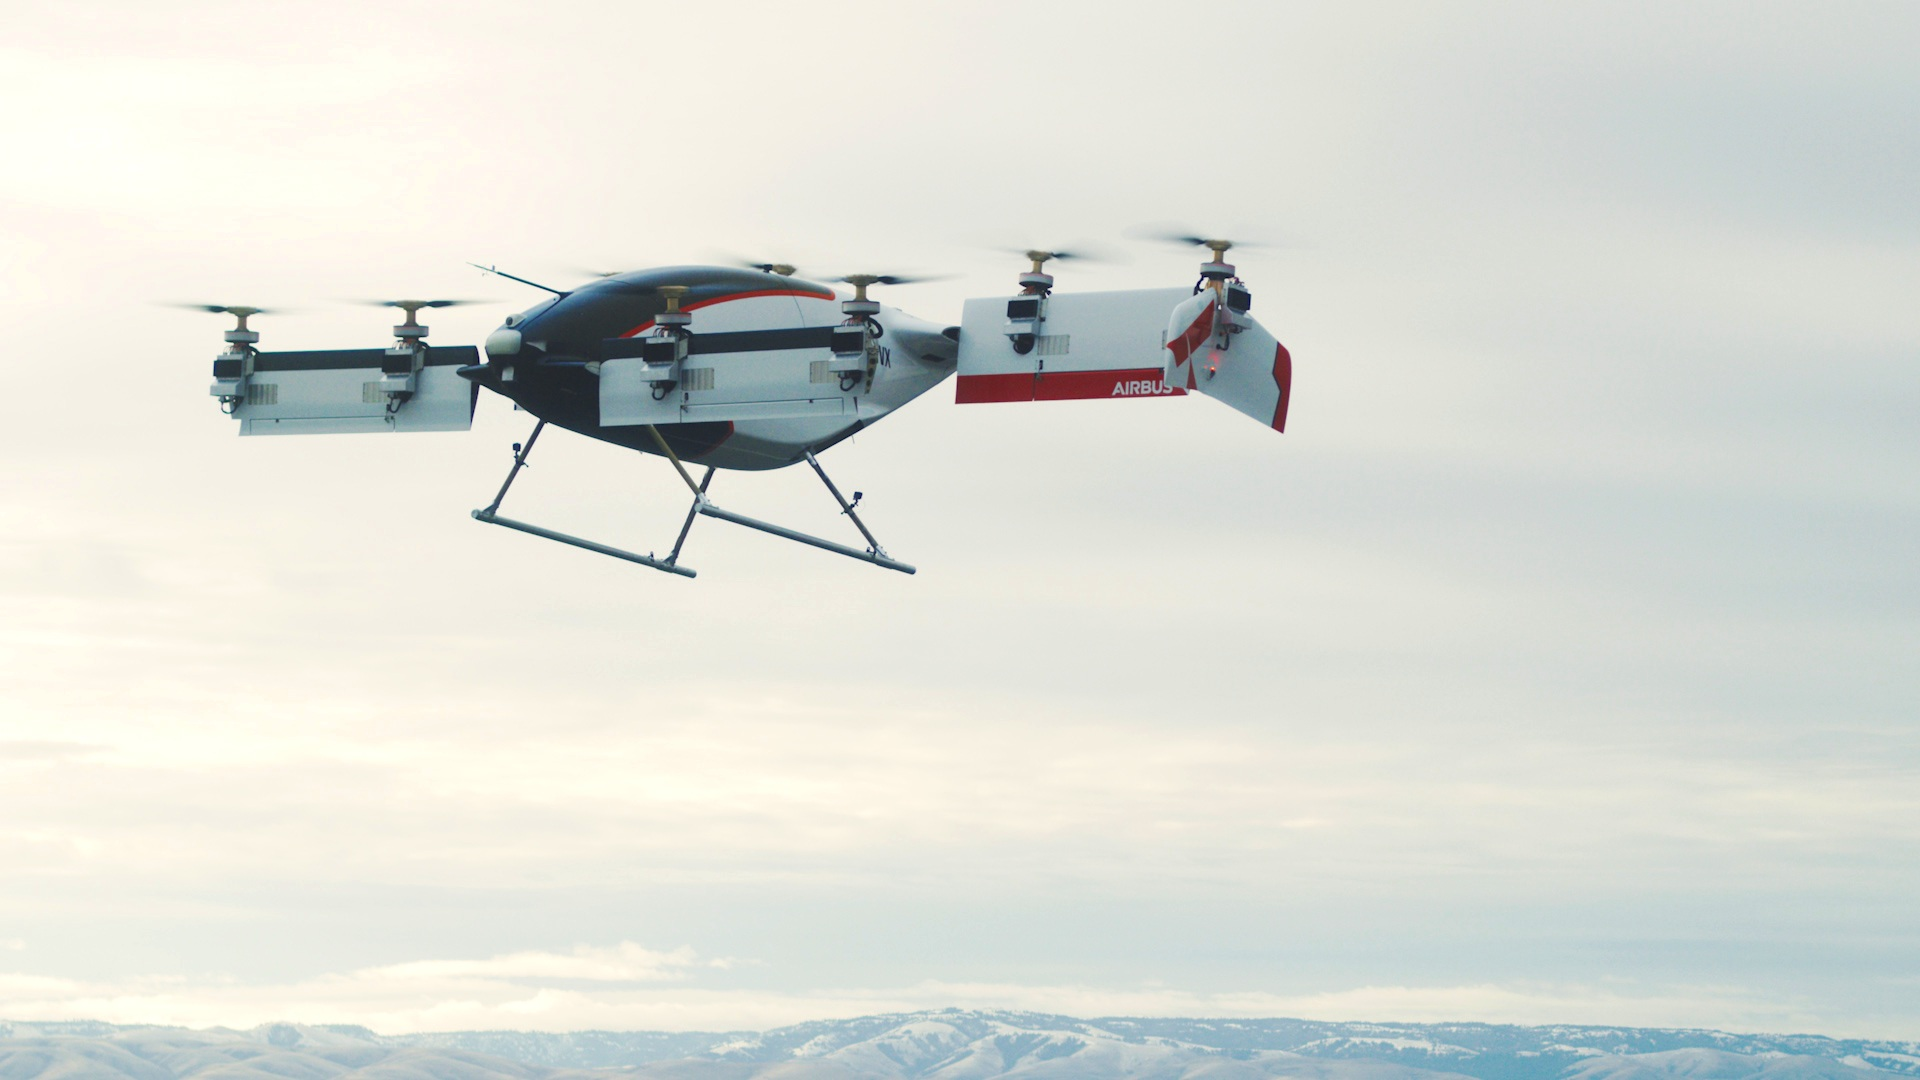 Flying cars are closer than you think - Quartz